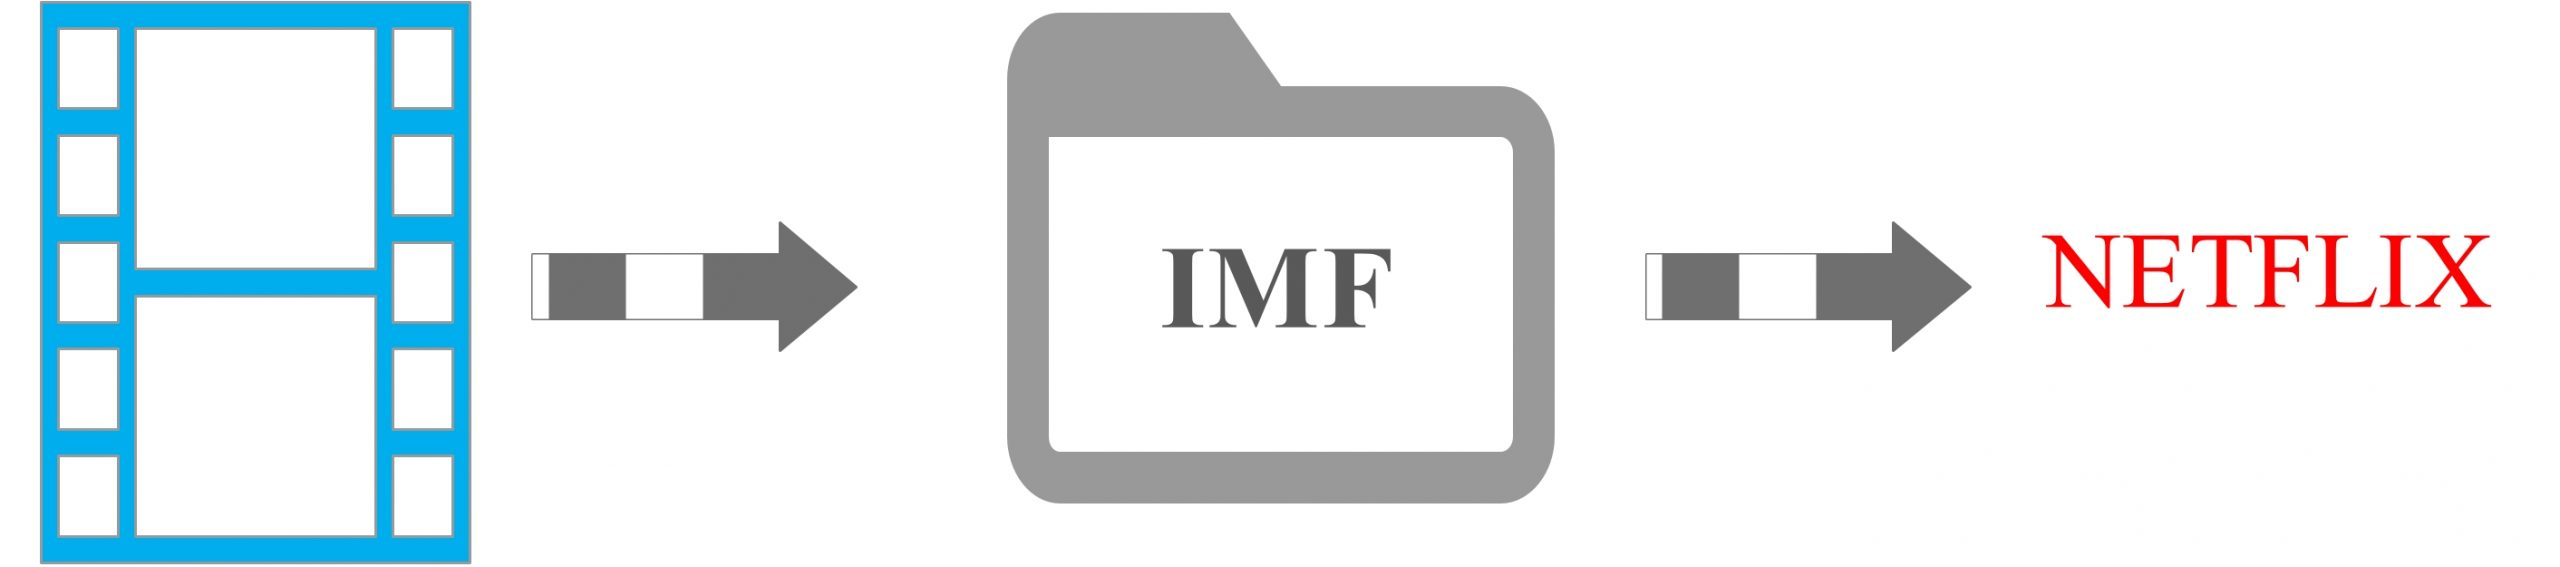 IMF Netflix Delivery